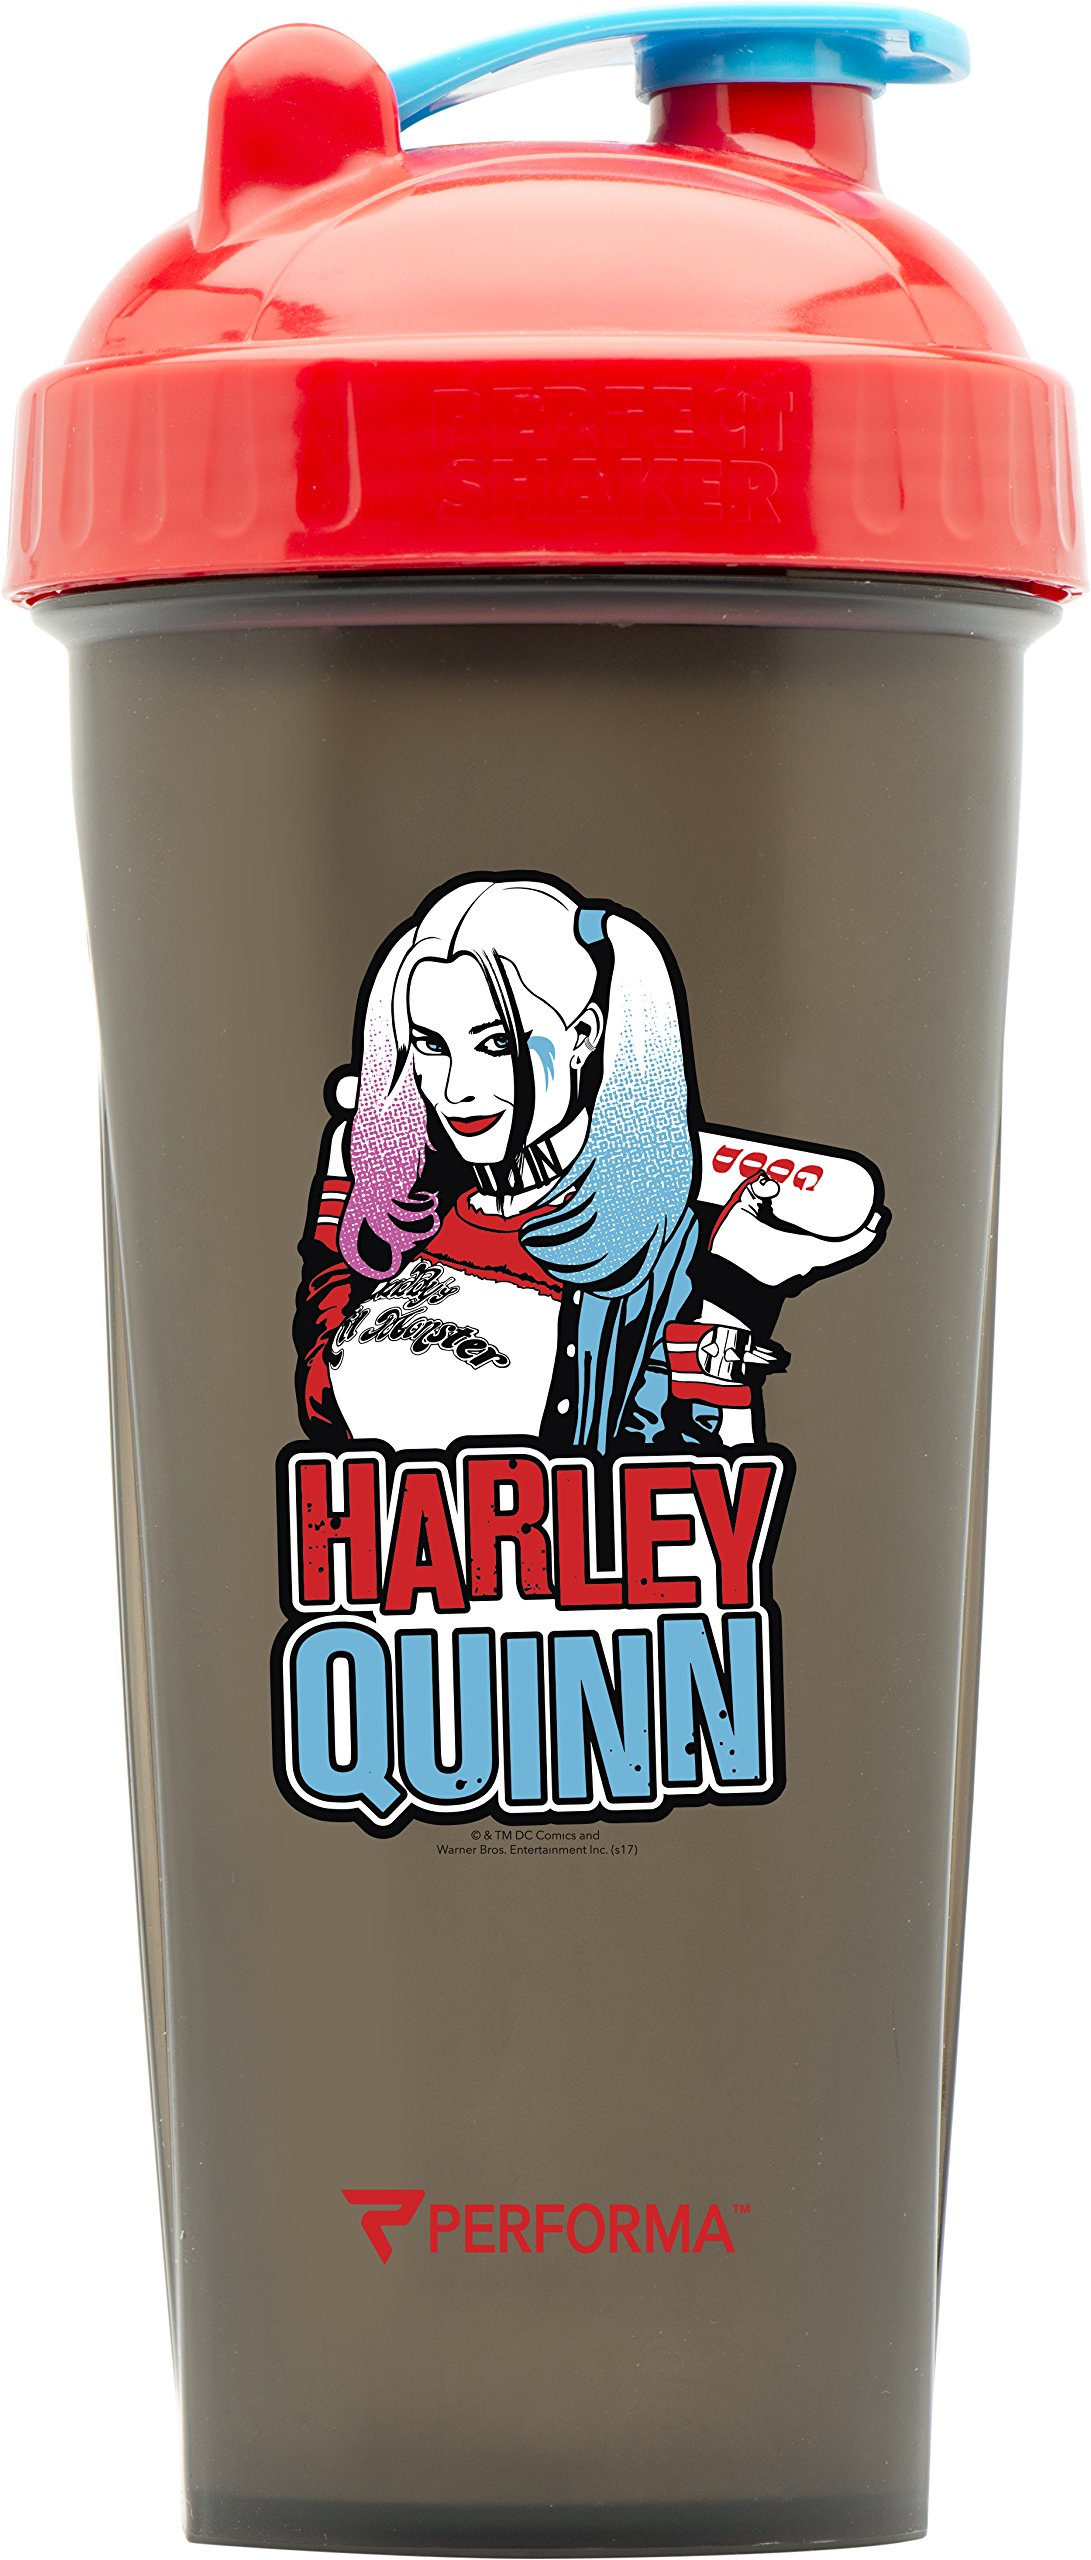 Performa Perfect Shaker - Justice League Movie Series, Leak Free Bottle With Actionrod Mixing Technology For Your Sports & Fitness Needs! Dishwasher and Shatter Proof (Harley Quinn)